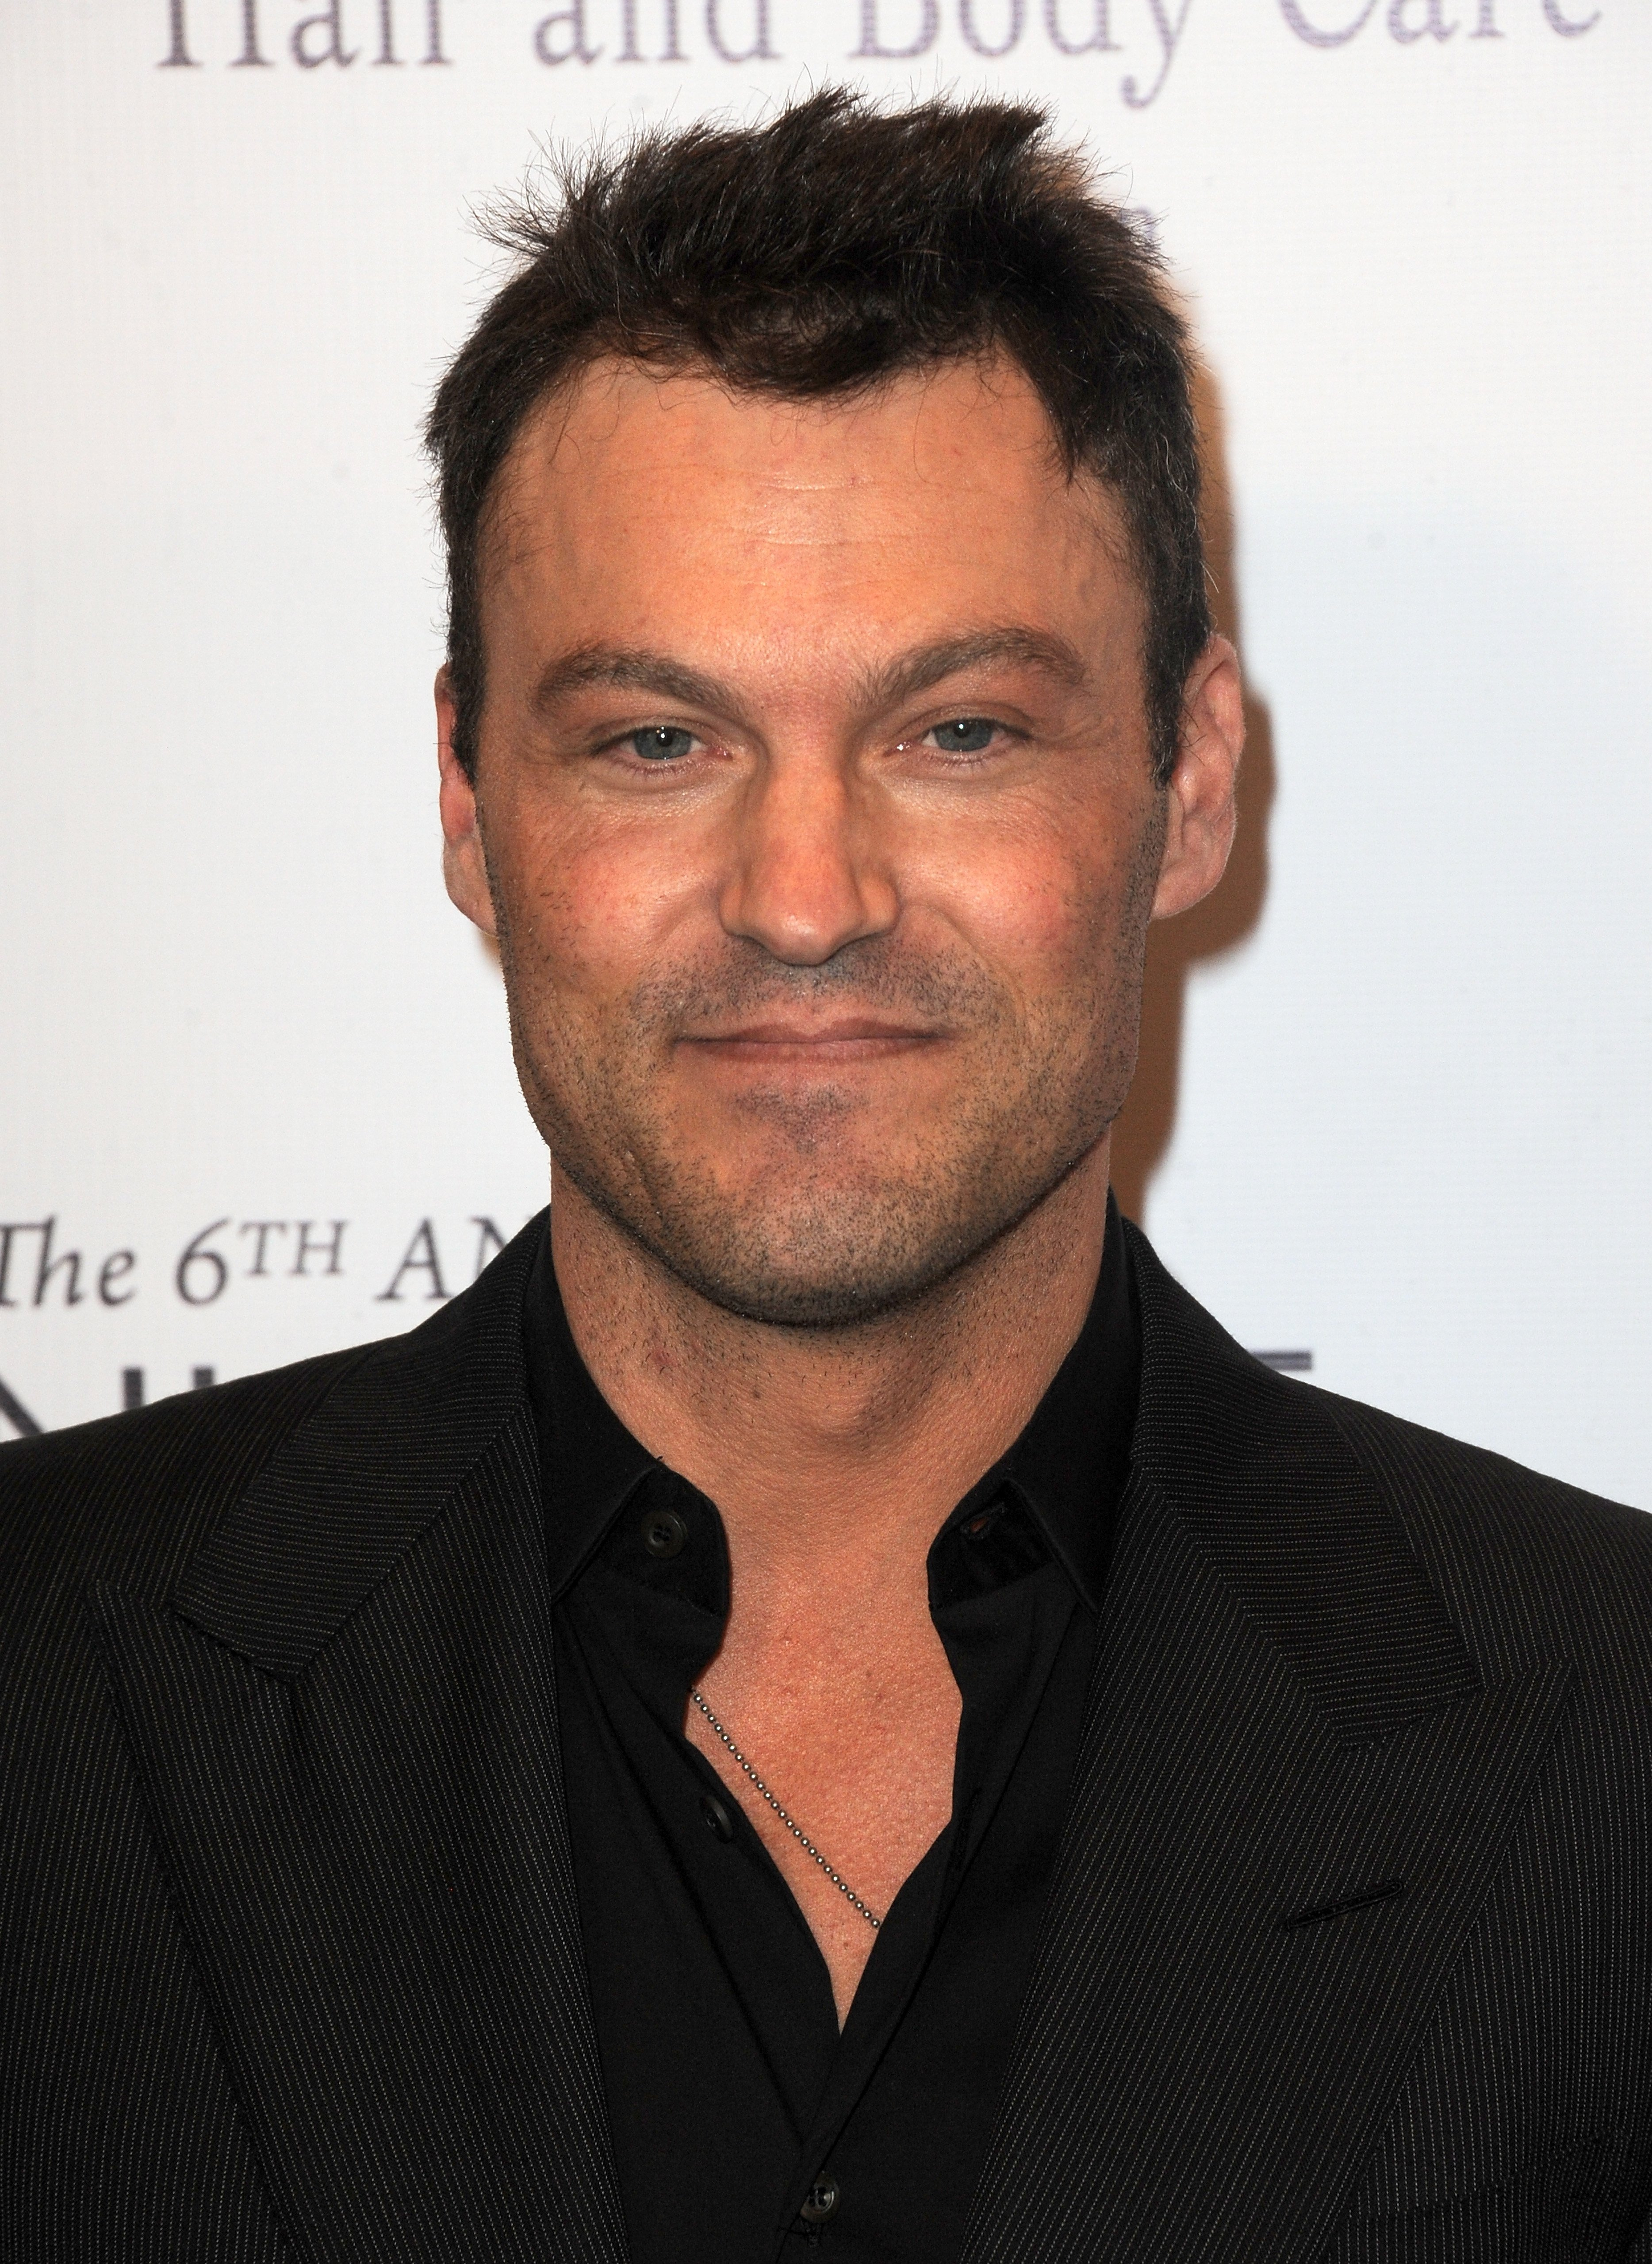 Brian Austin Green arrives for the 6th Annual Night Of Generosity Gala held at Regent Beverly Wilshire Hotel on December 5, 2014, in Beverly Hills, California. | Source: Getty images.